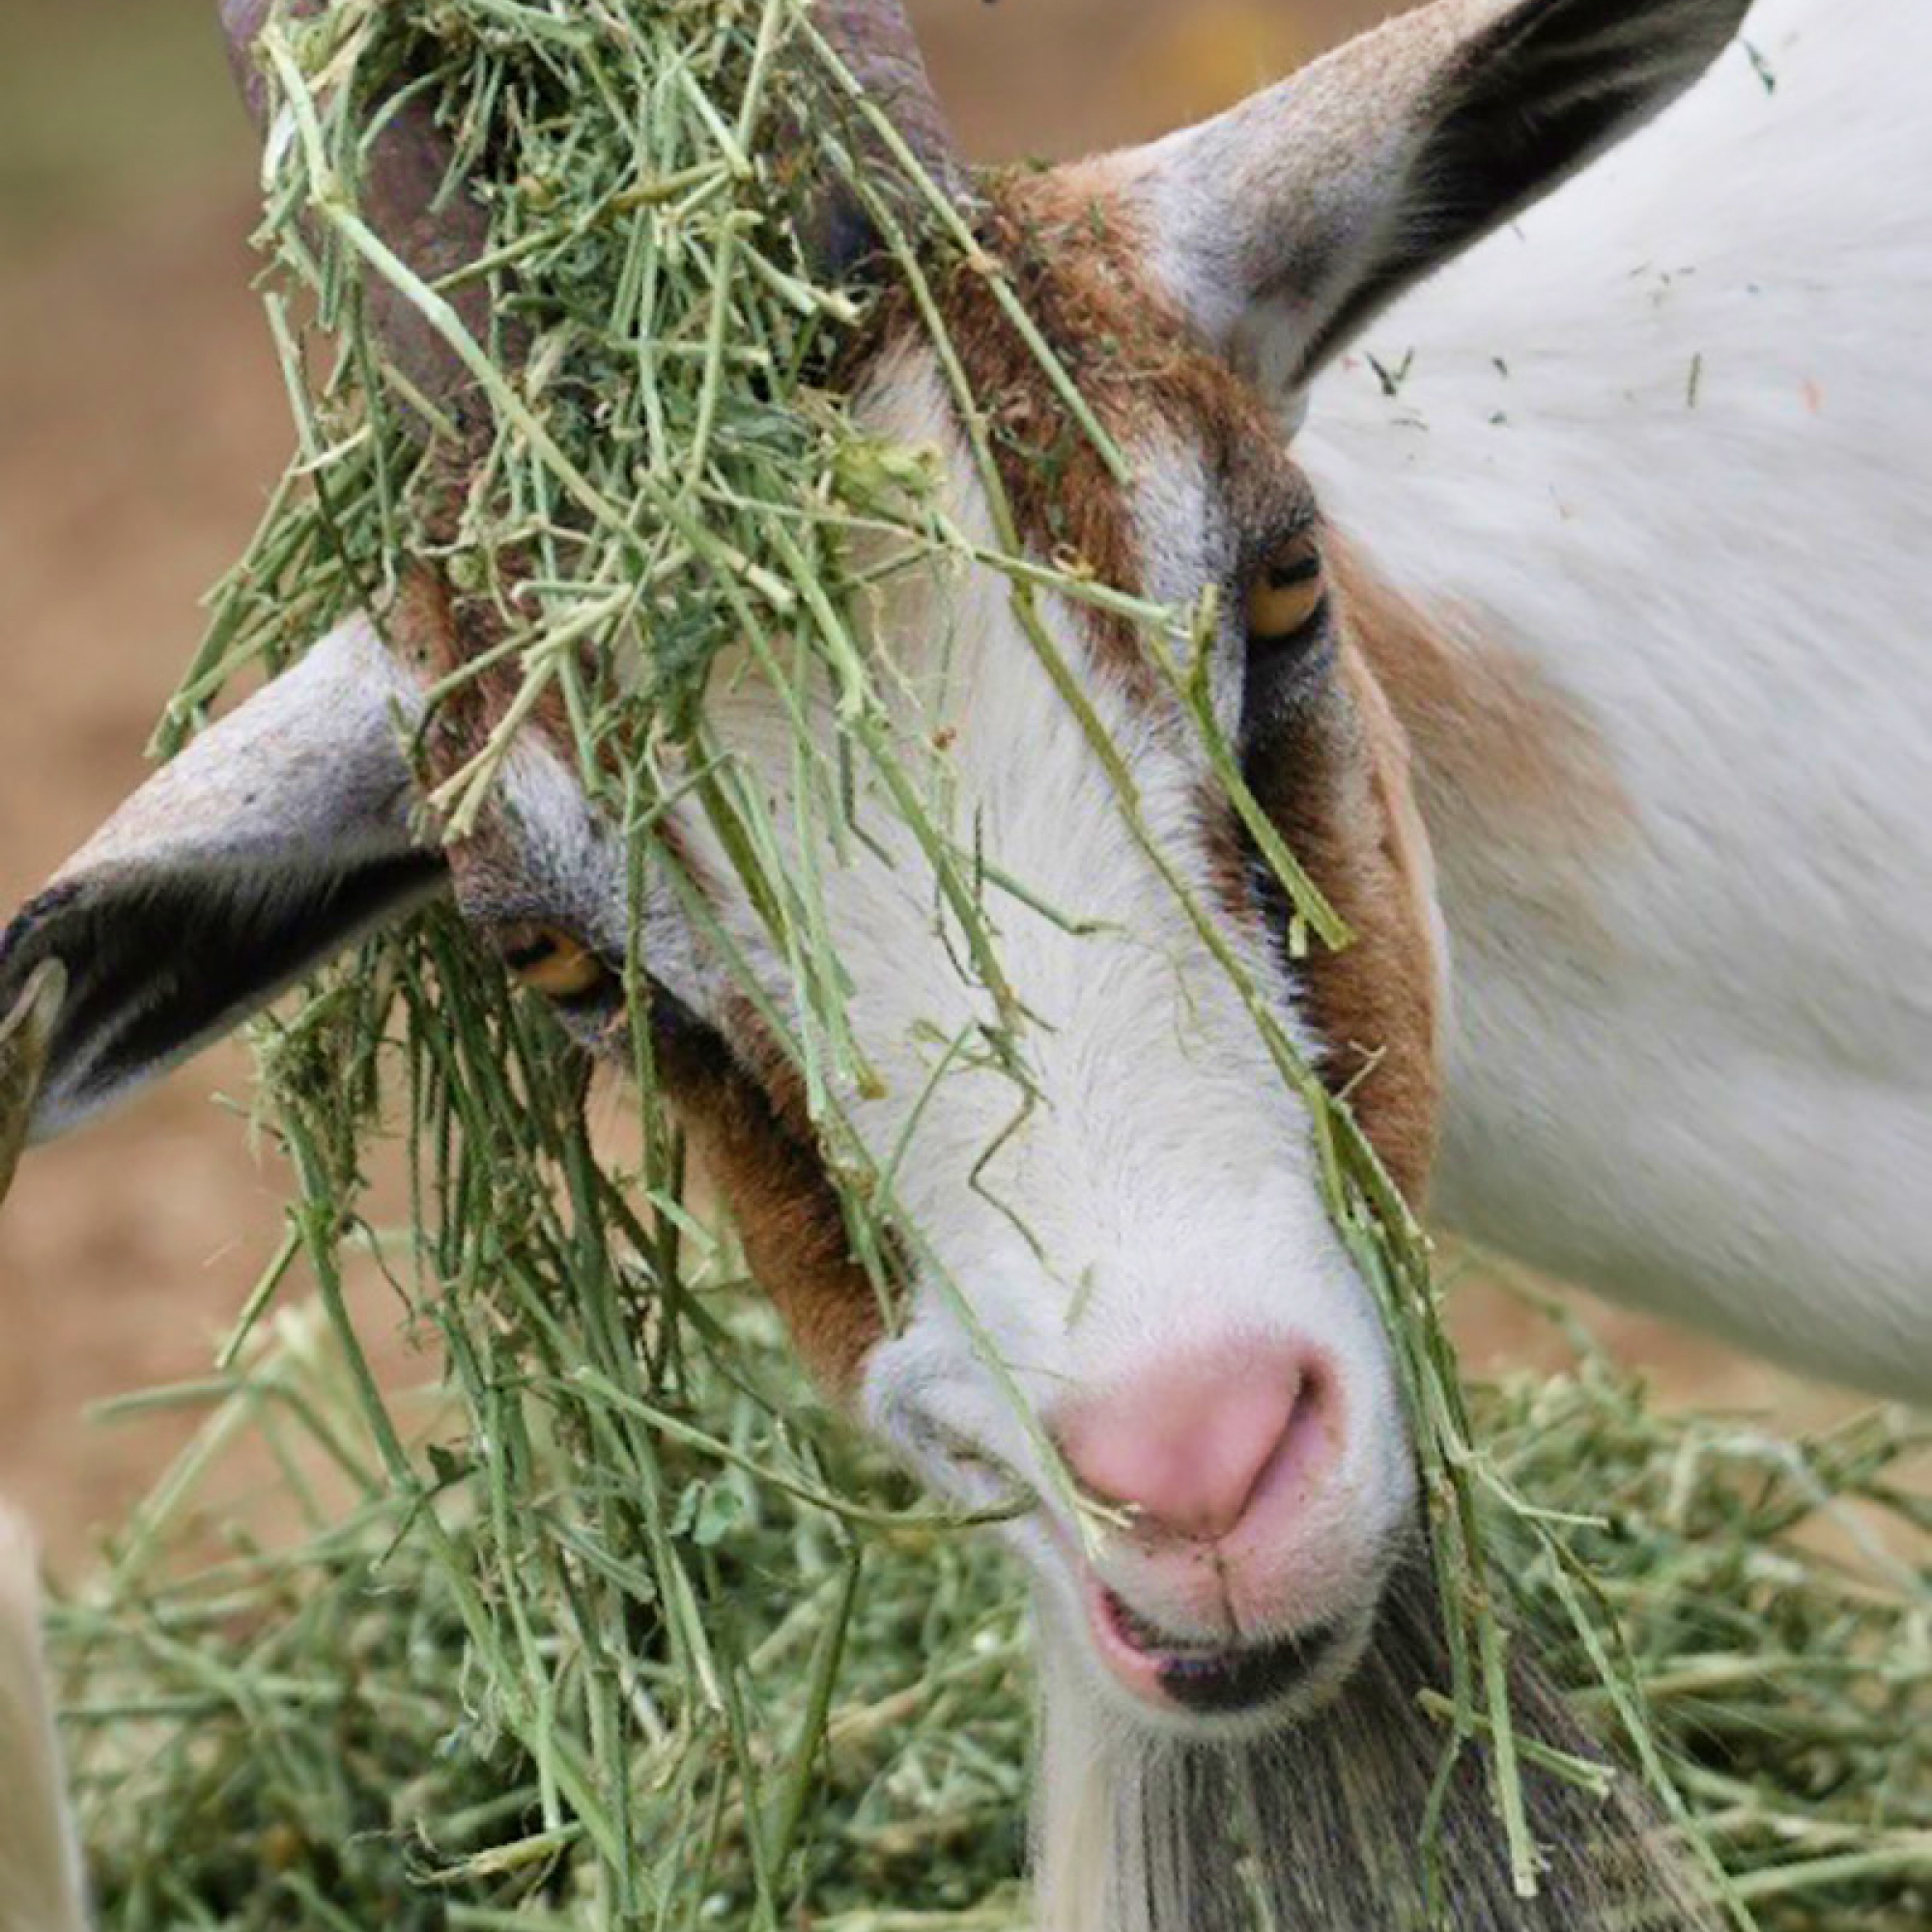 South Florida Society for the Prevention of Cruelty to Animals rescues goats, sheep and cows